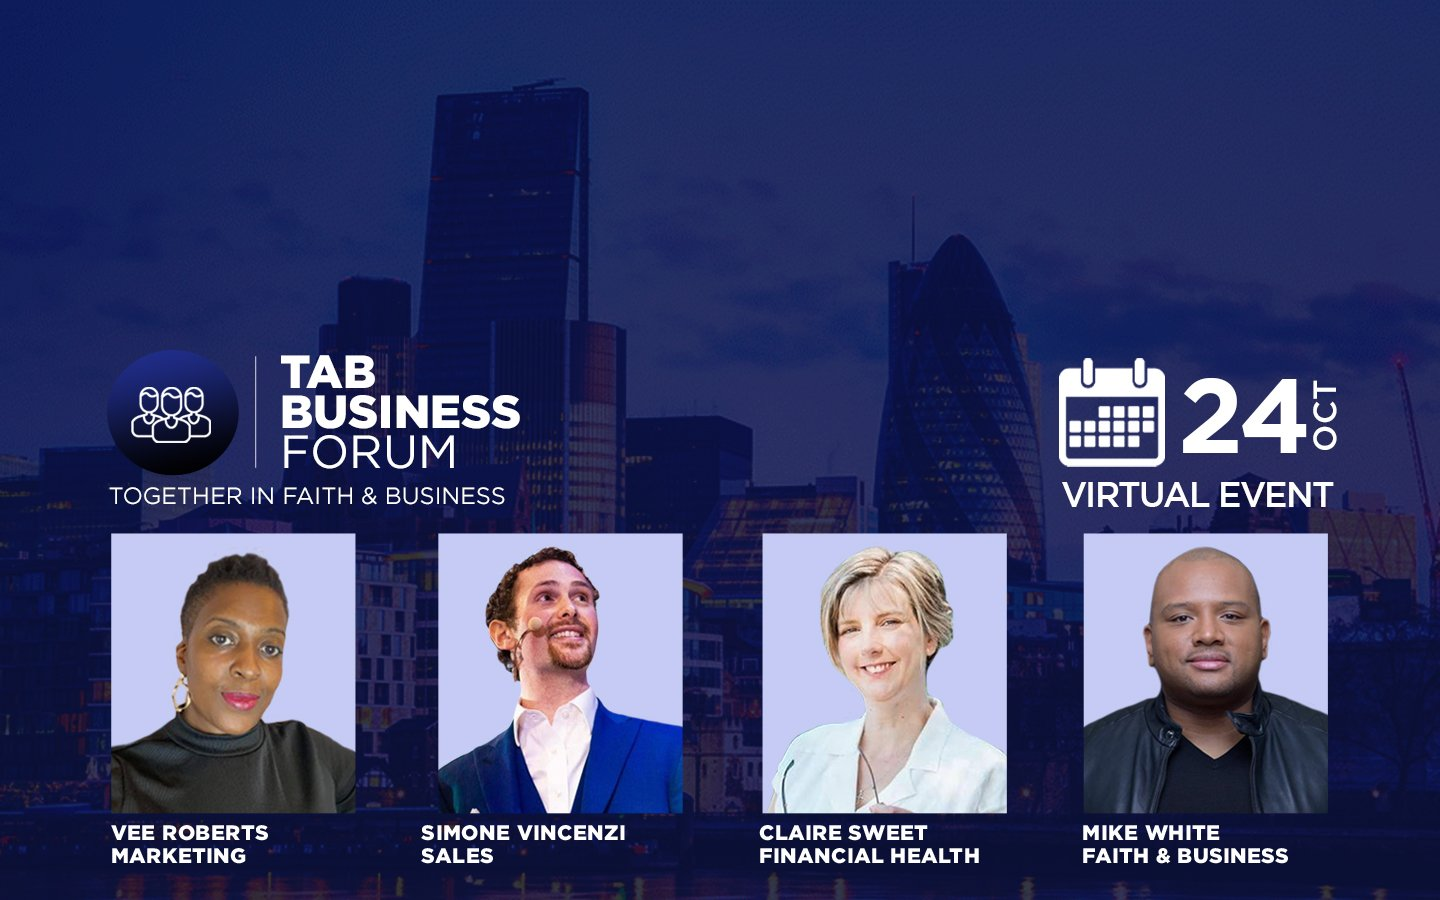 Tab_business_forum_Oct_Event